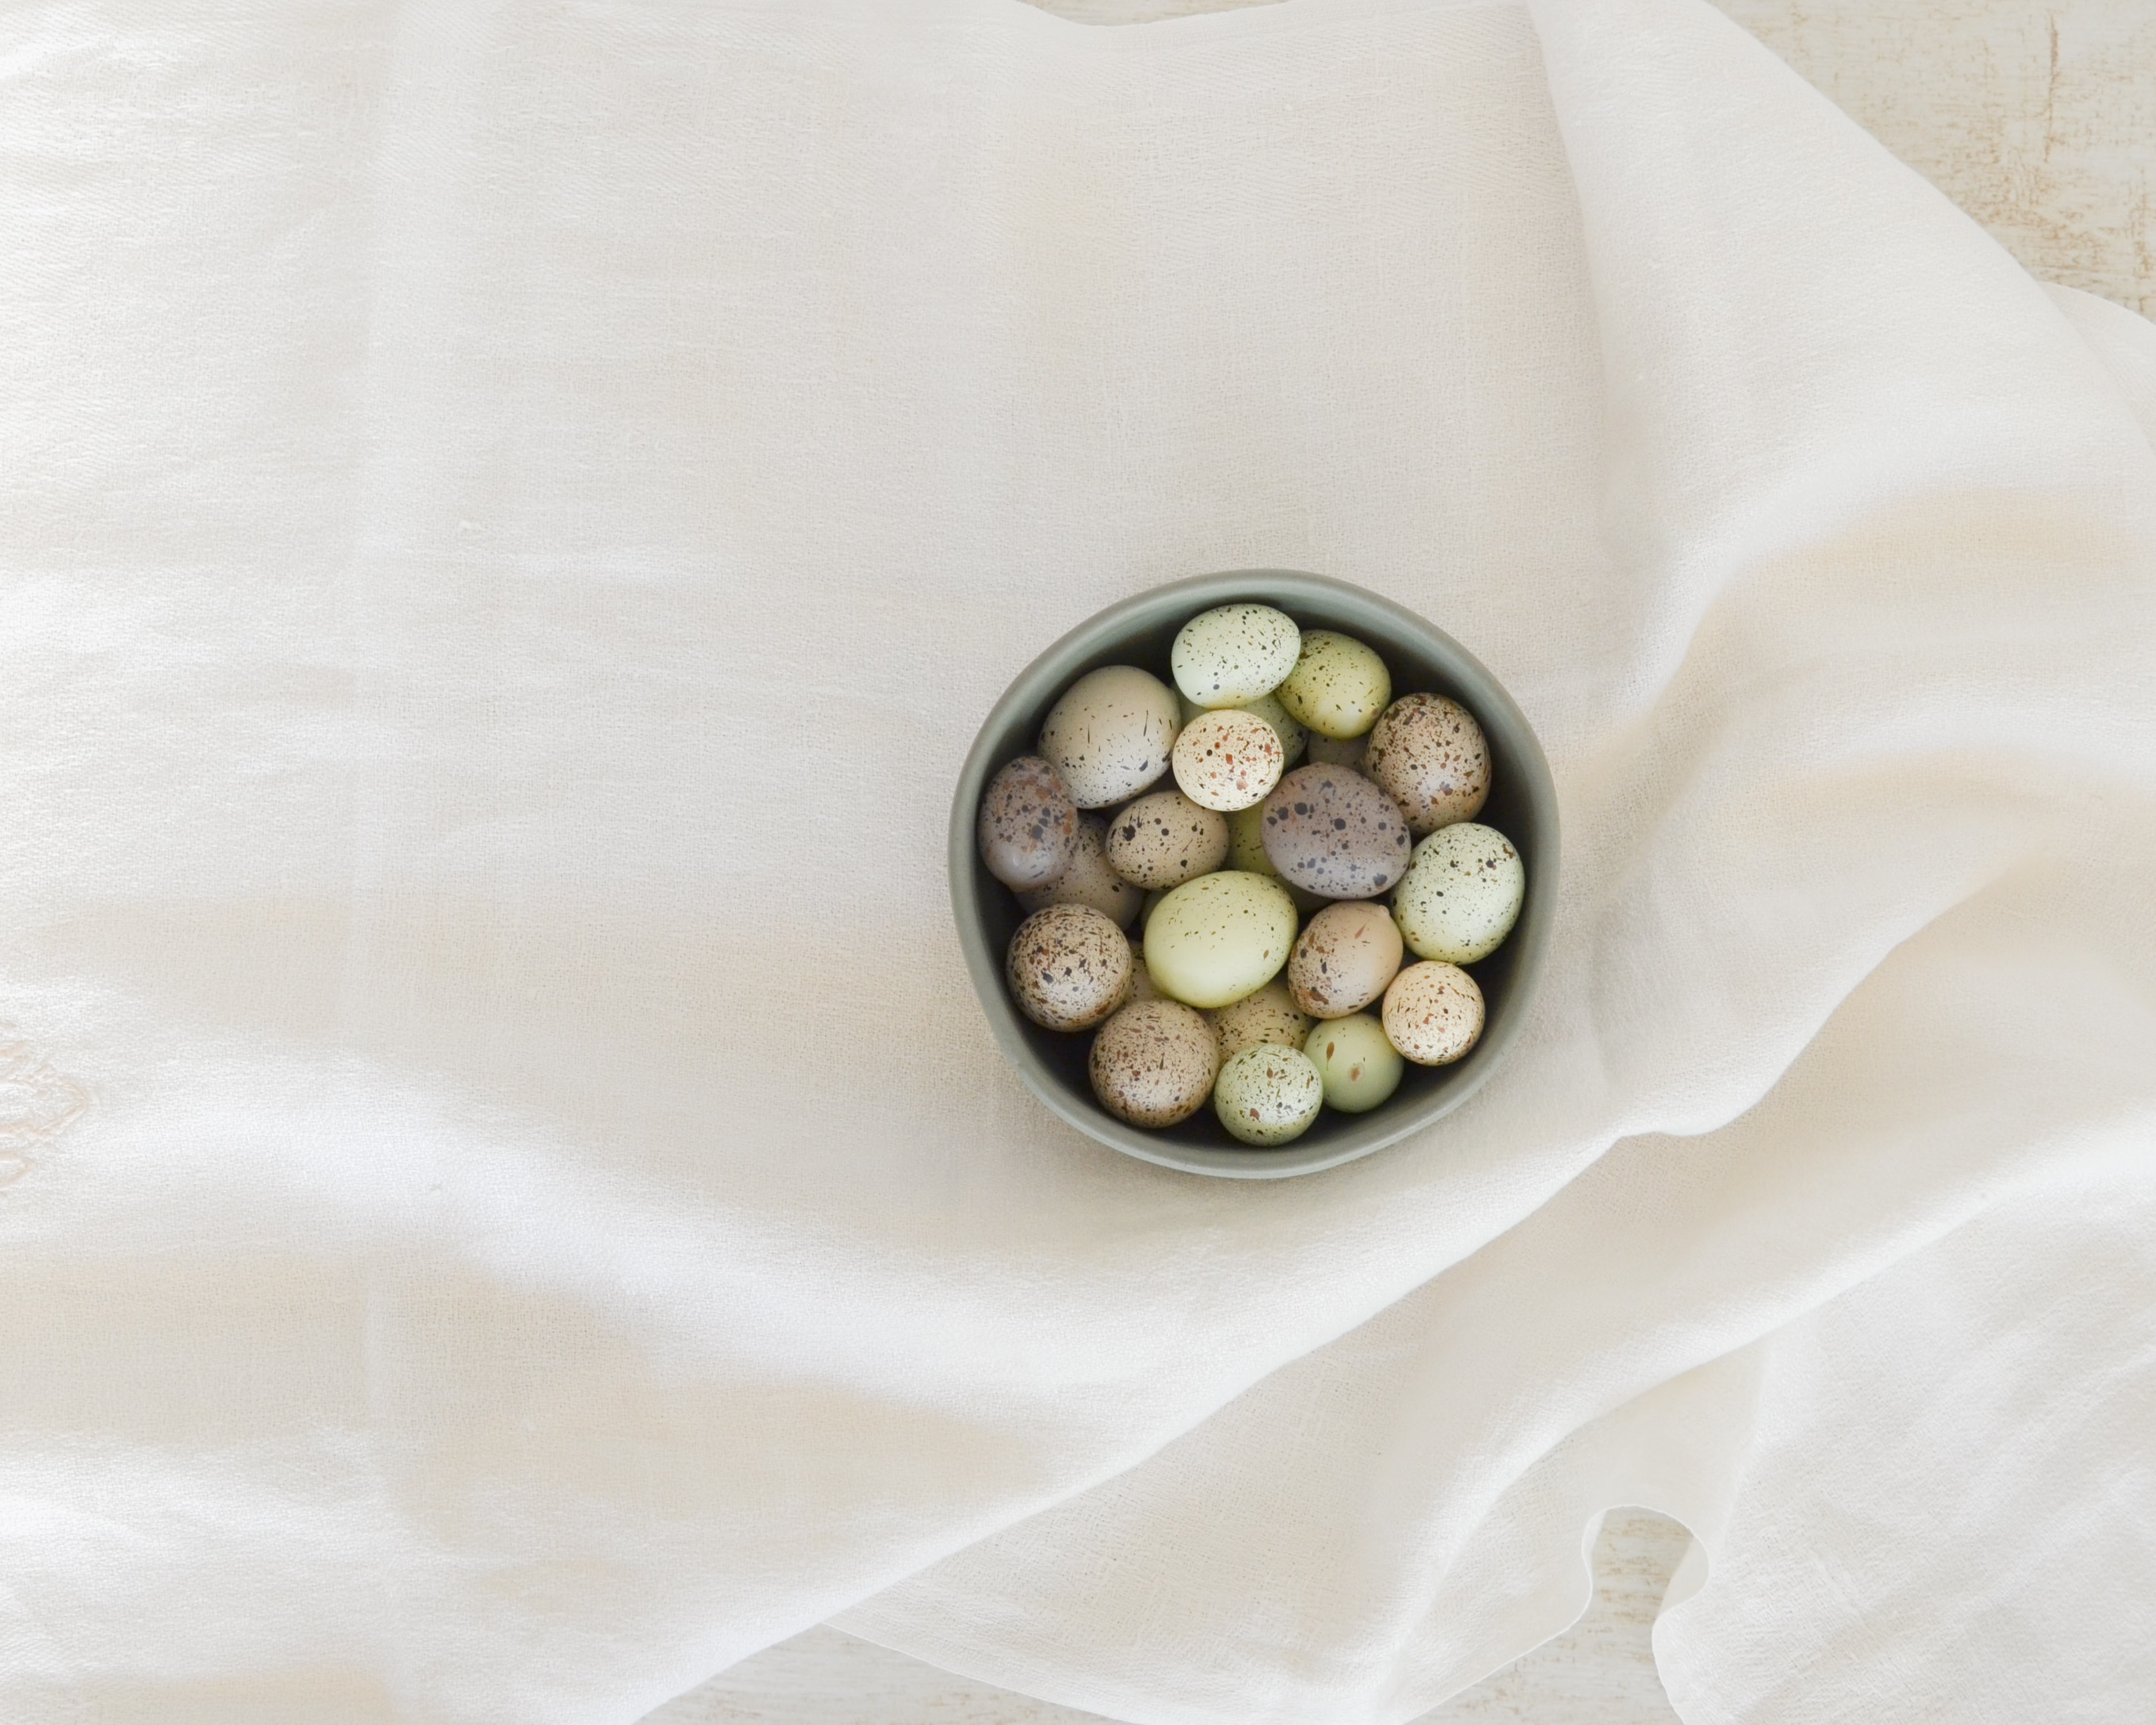 pebbles in gray ceramic bowl on white textile